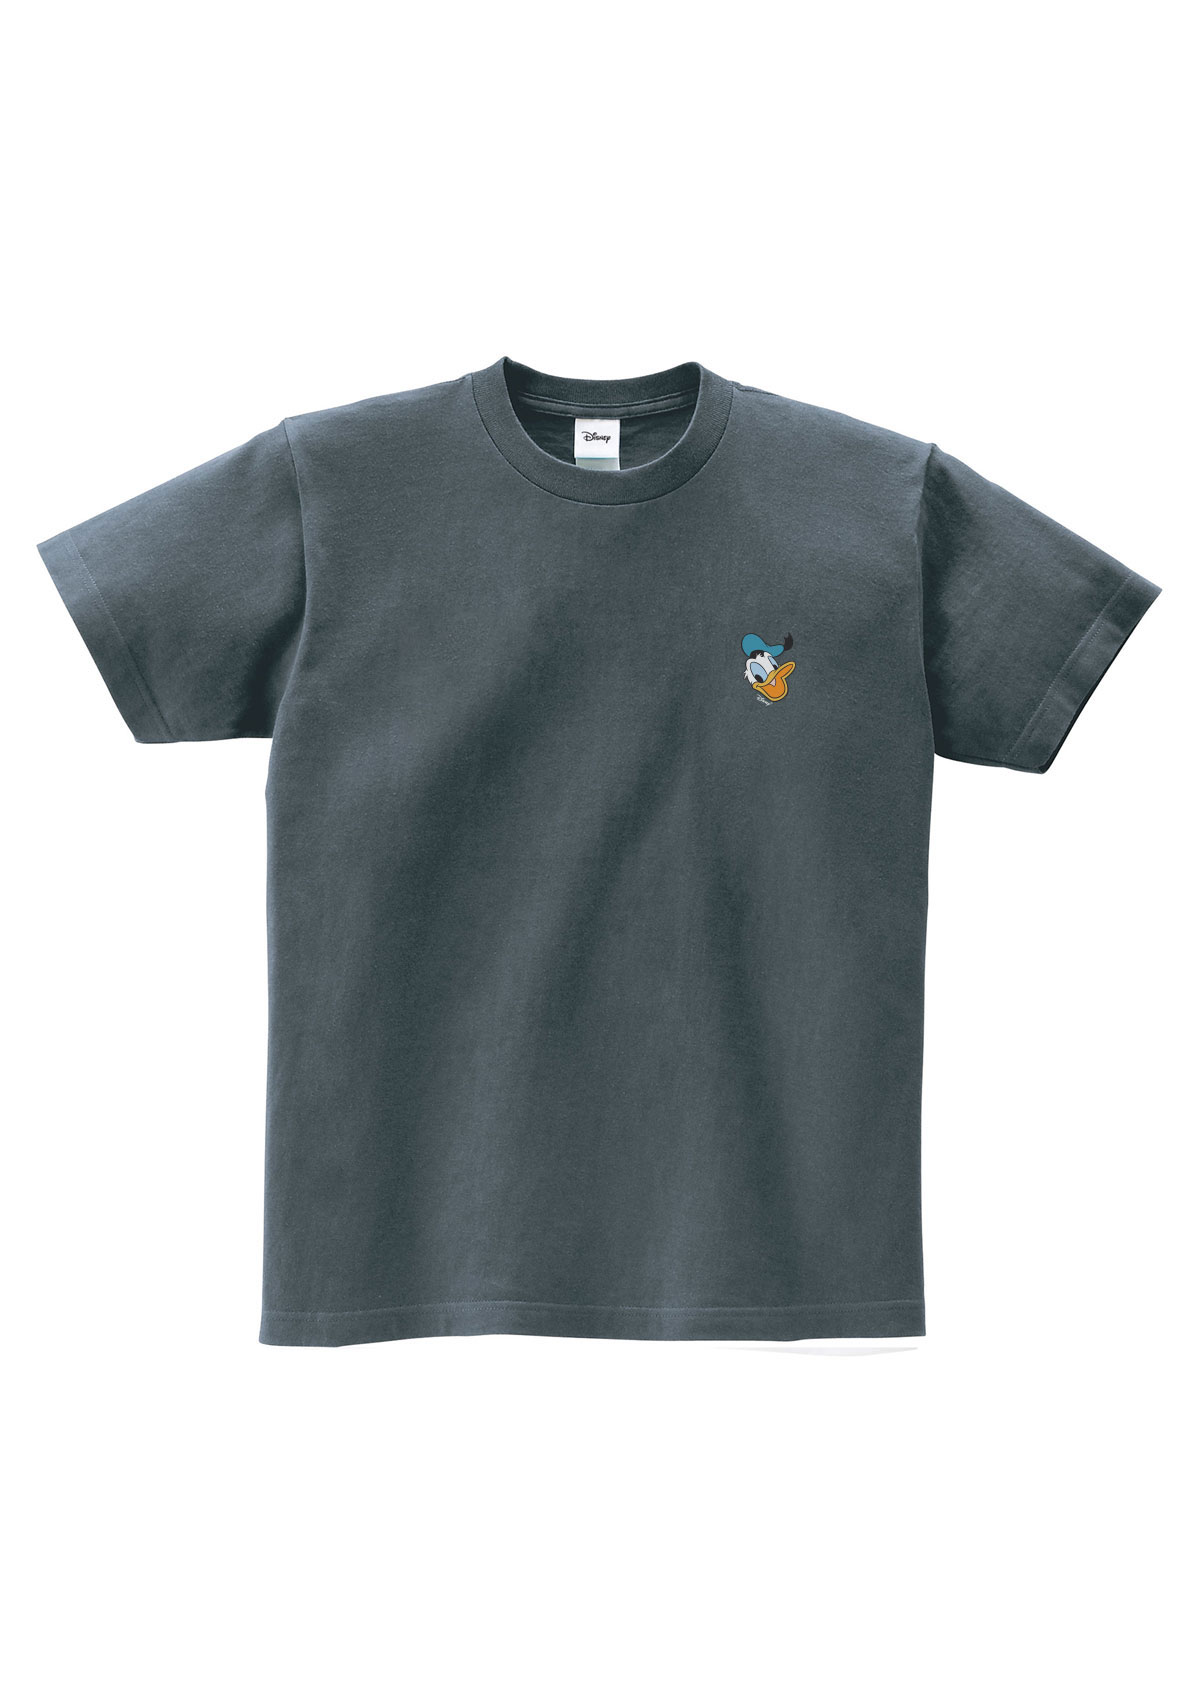 ORI Smile Duck T-Shirt (Charcoal)